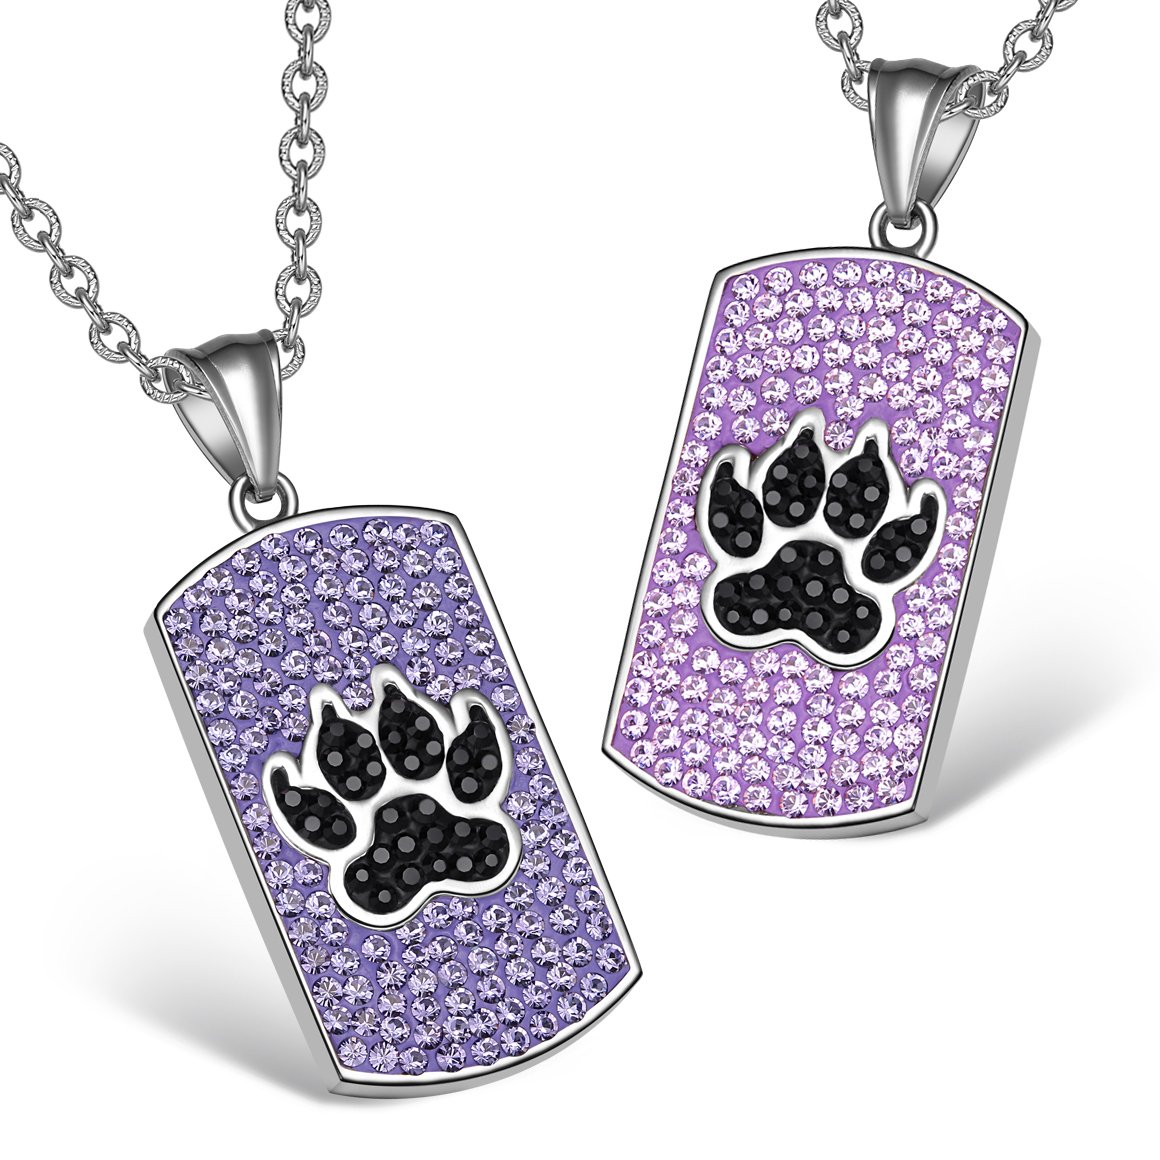 Wolf Paw Austrian Crystal Love Couples or Best Friends Tag Lavender Purple Black Charm Necklaces